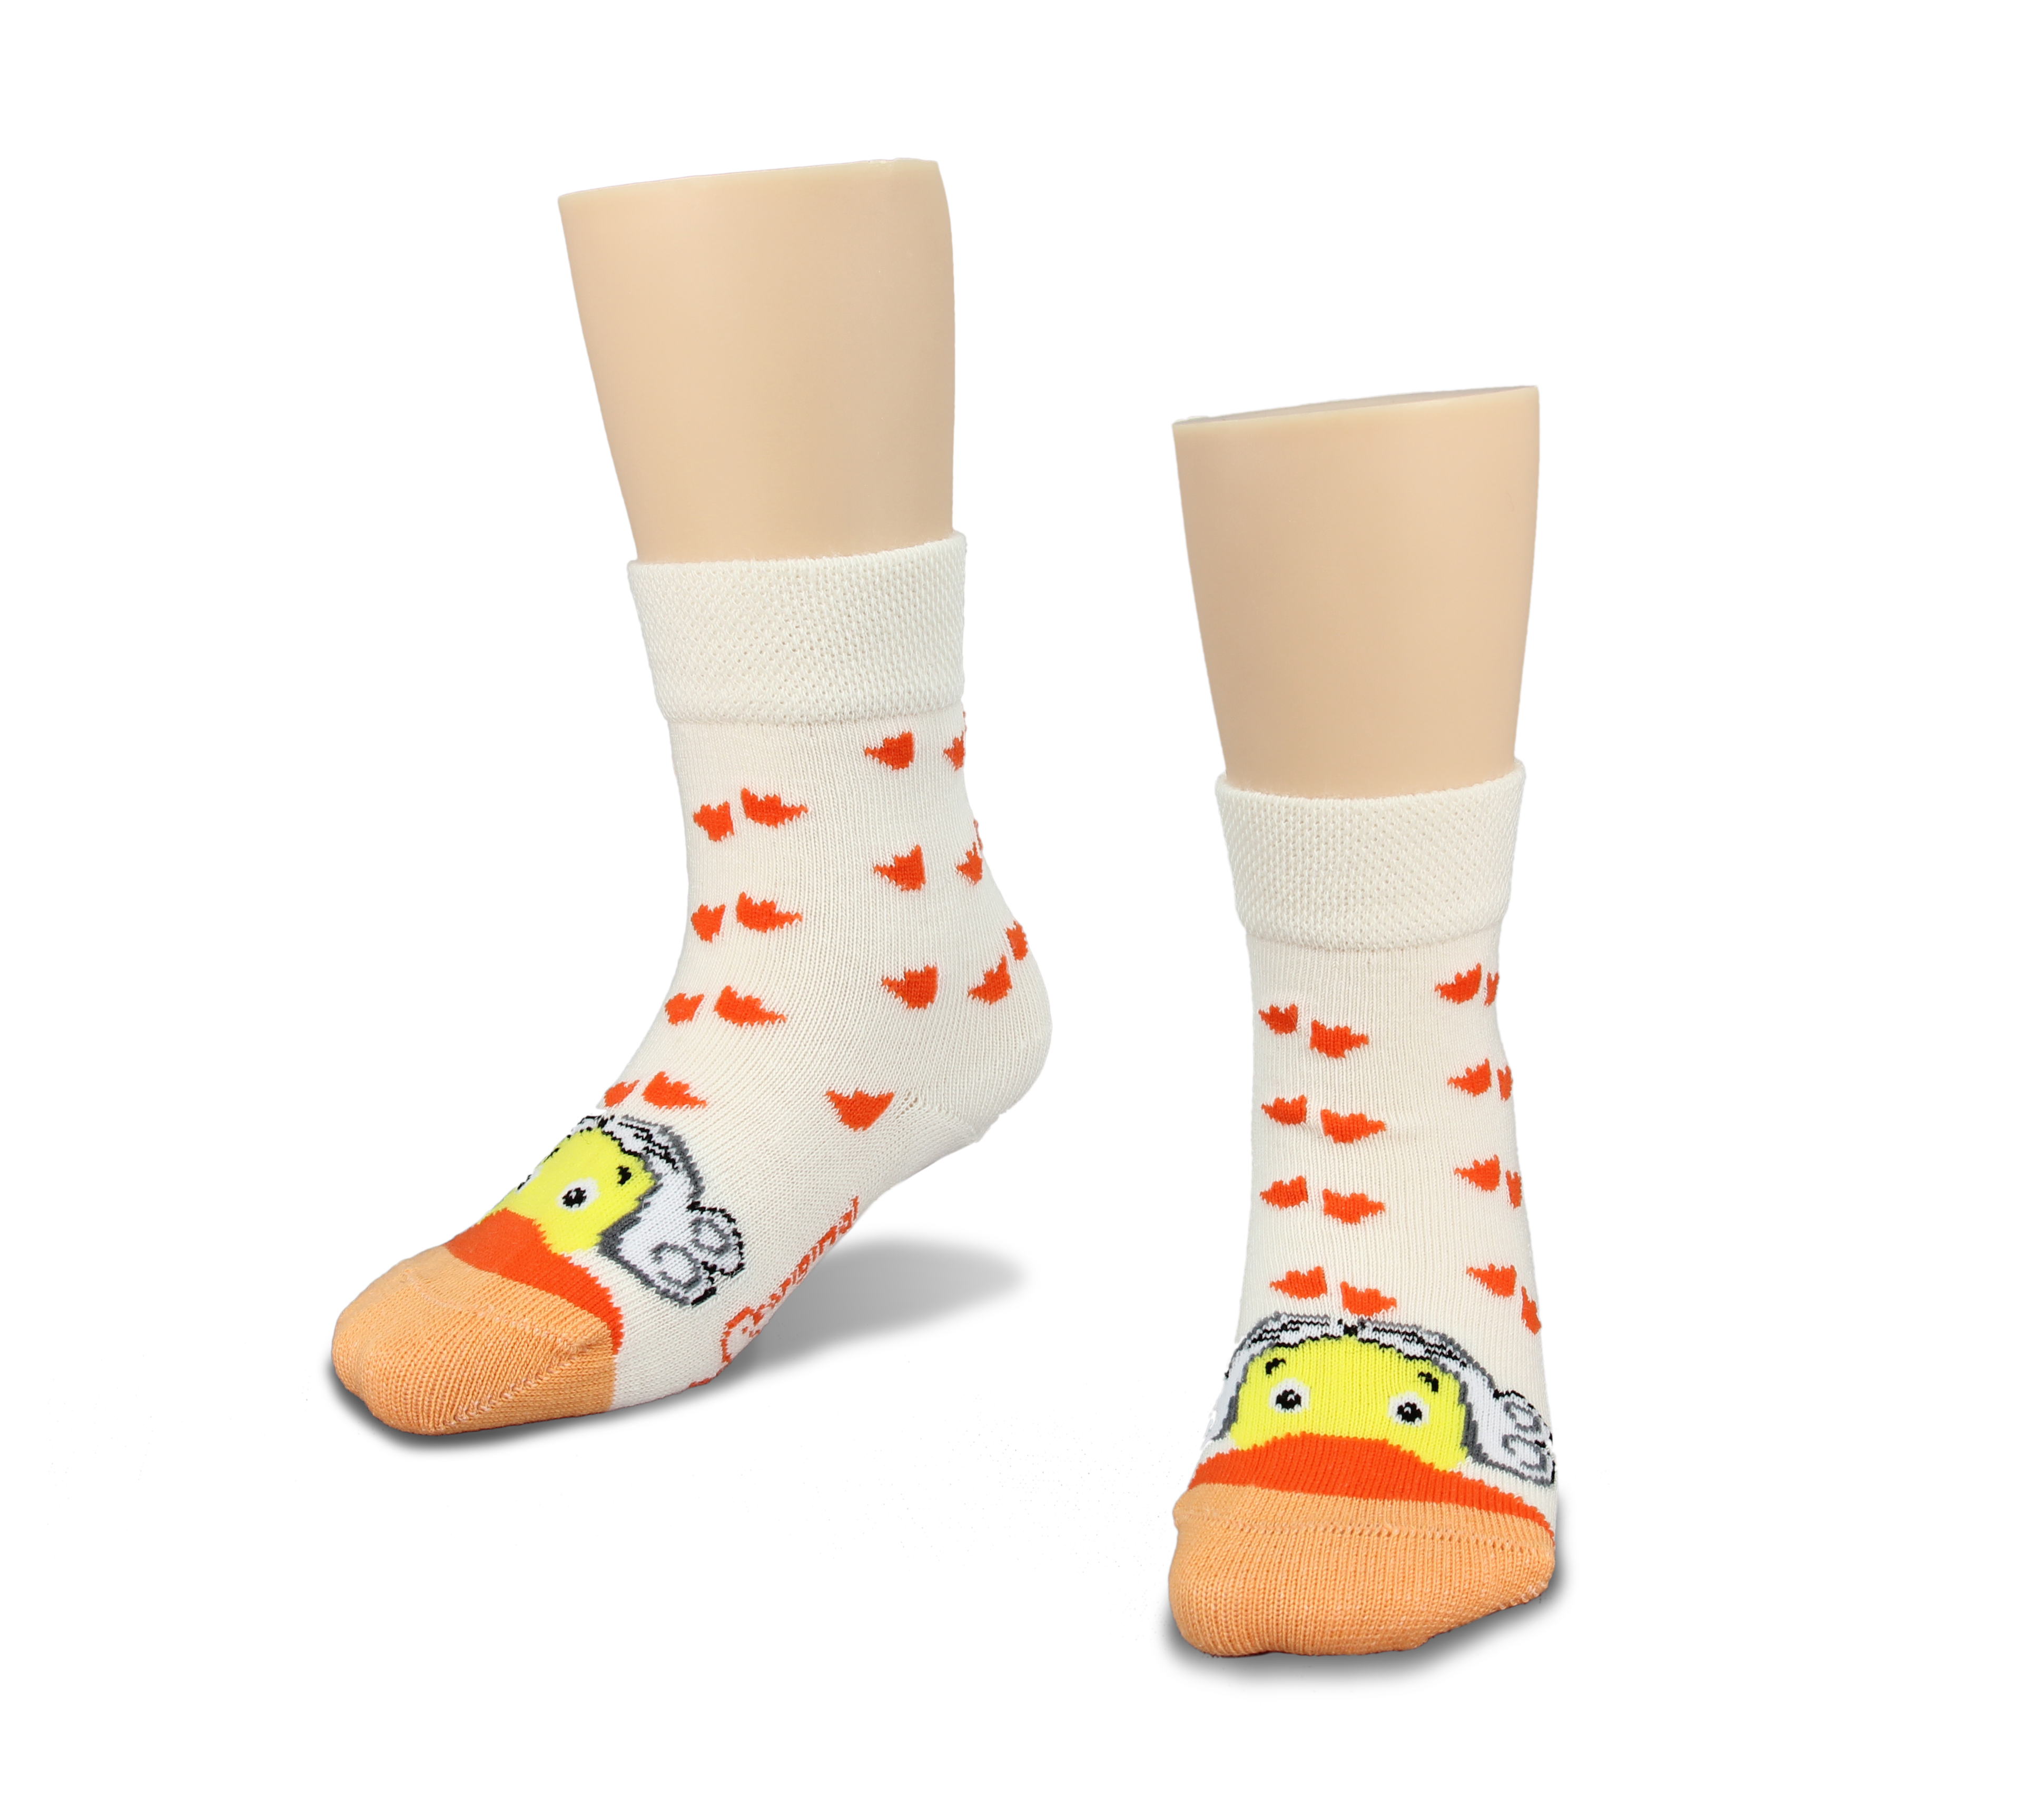 kindersocken_2.jpg